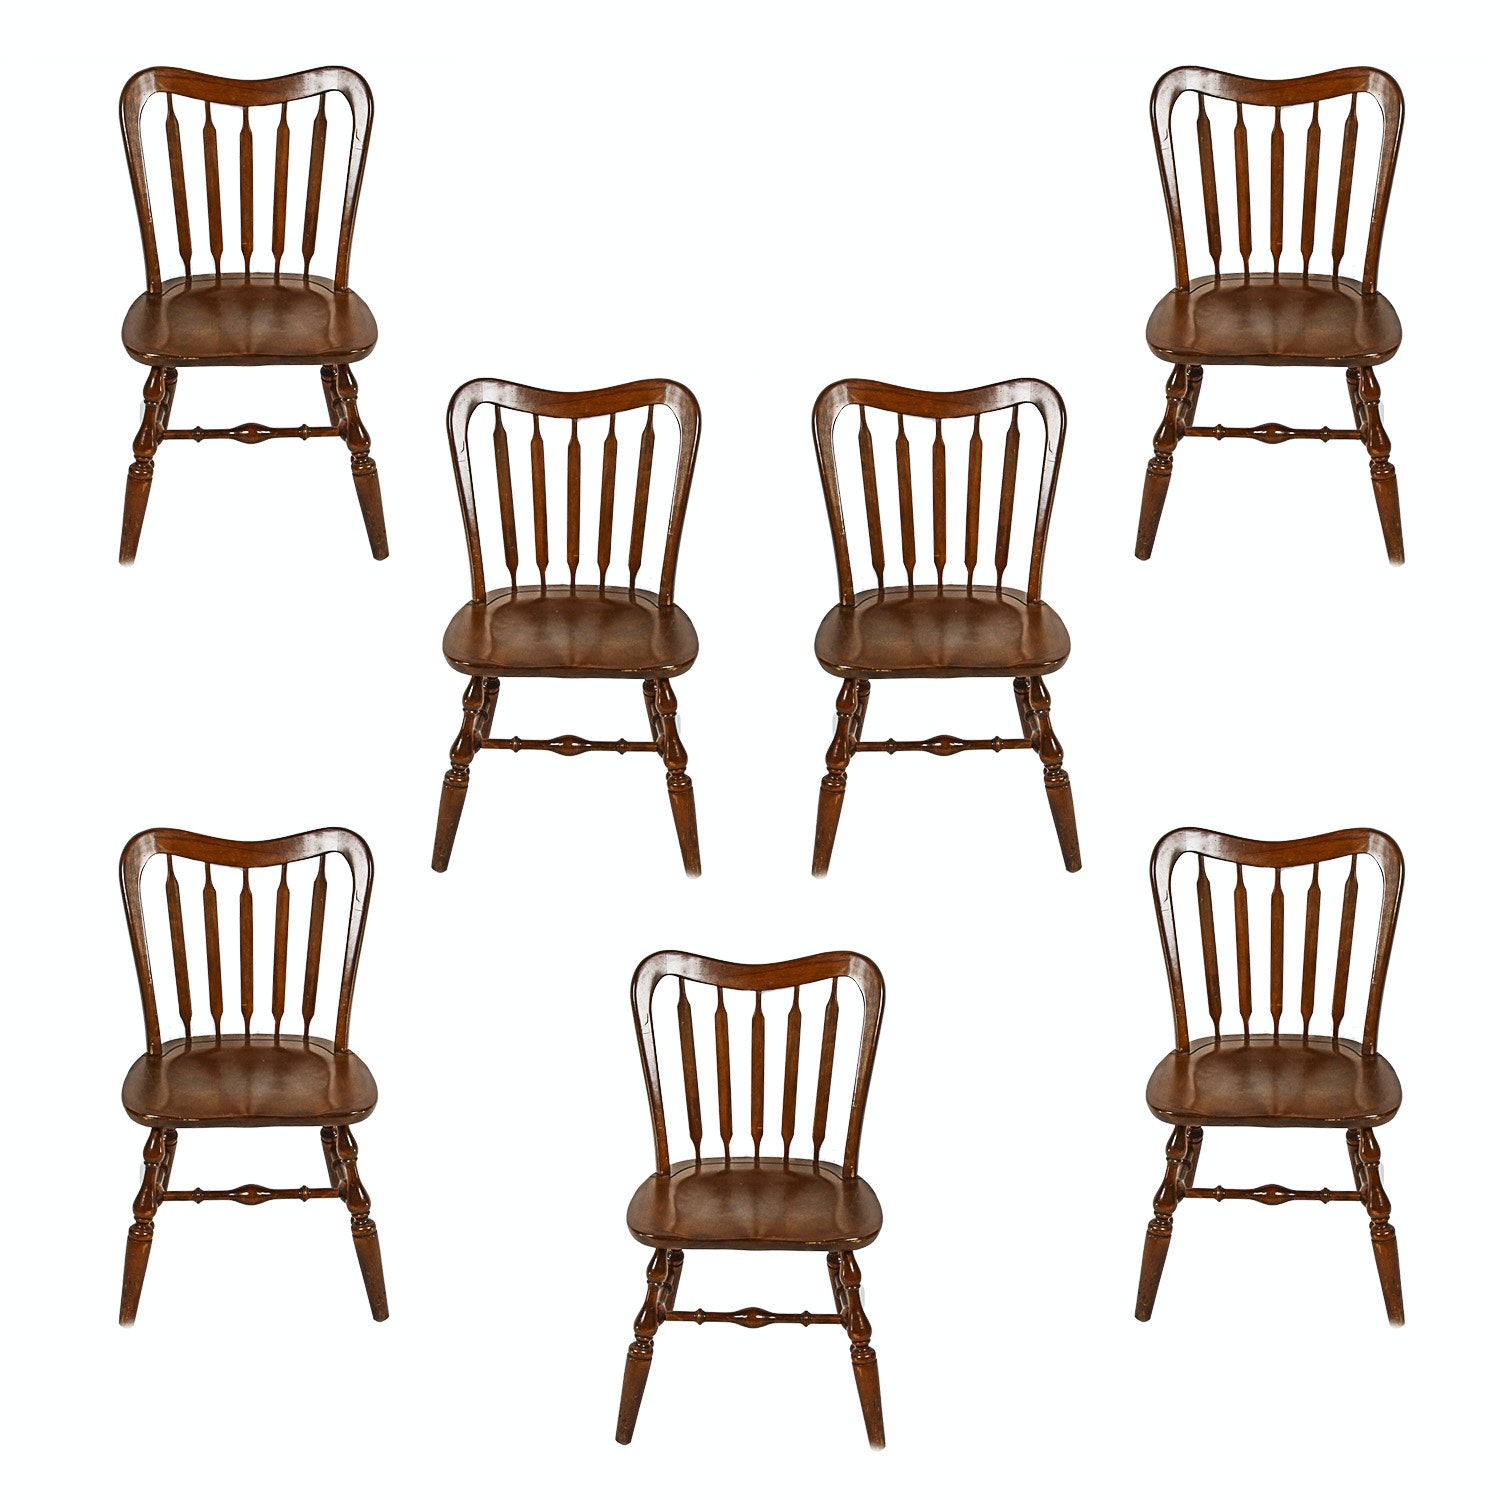 Temple Stuart Furniture Early American Walnut Side Chairs ...